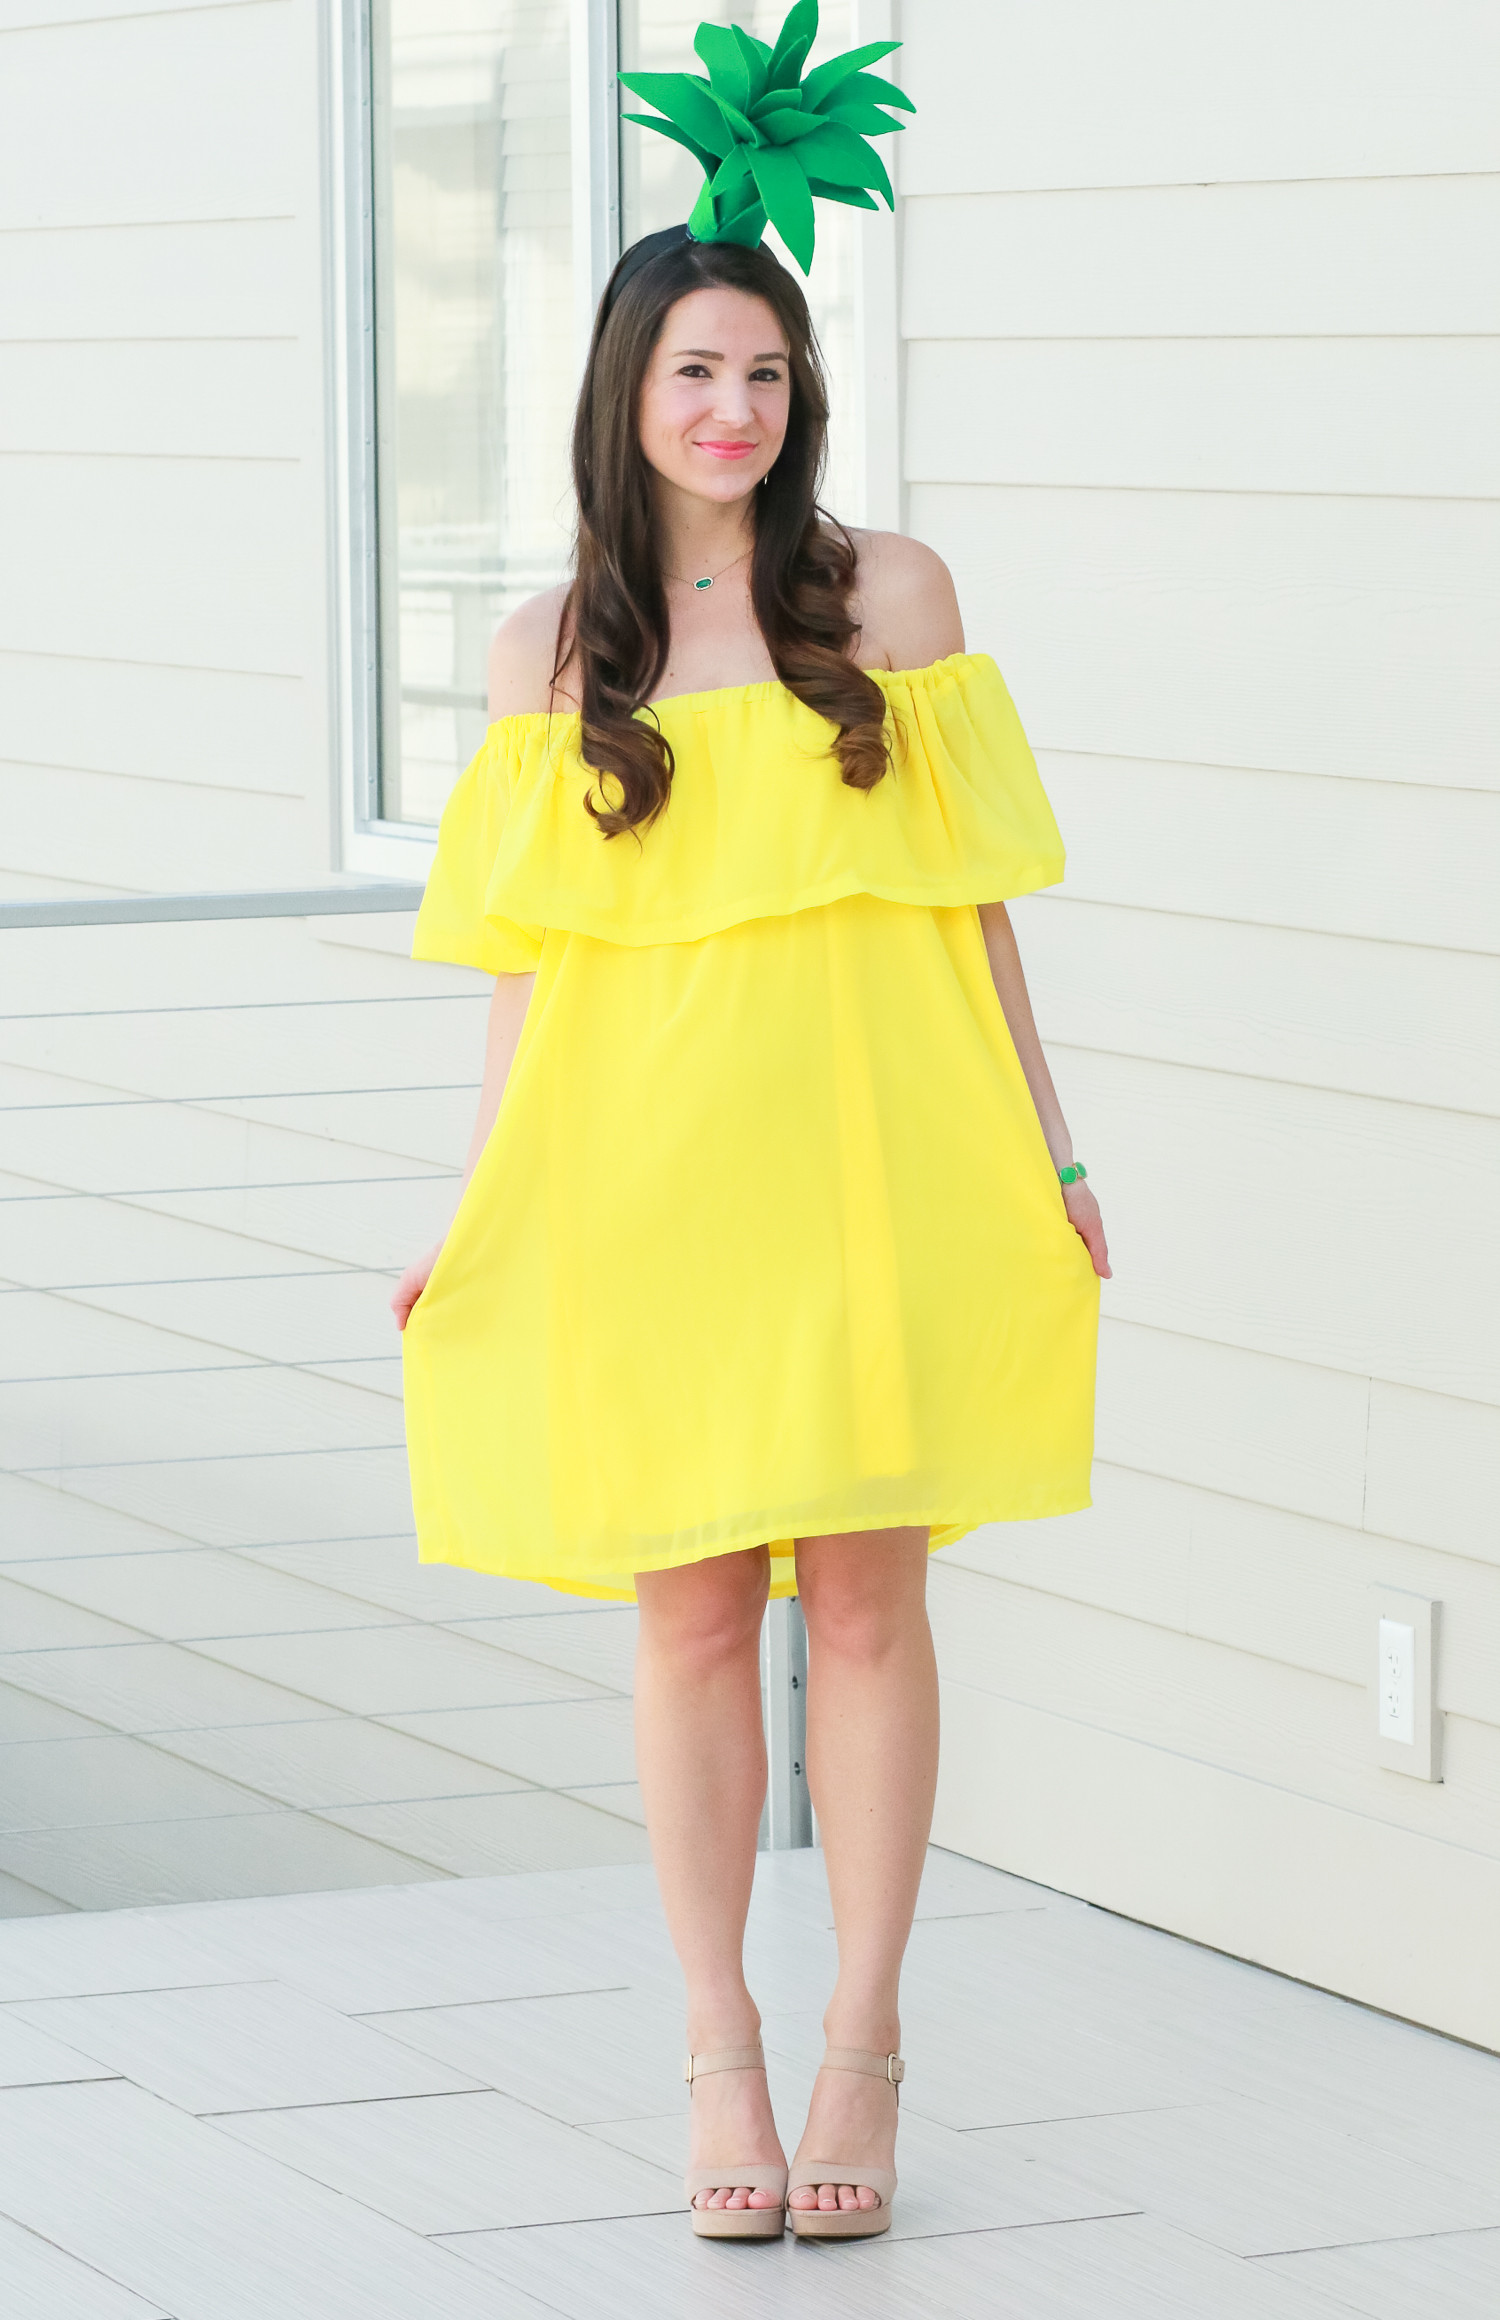 Quick Easy DIY Halloween Costumes Adults  DIY Pineapple Costume That Costs Less Than $3 to Make